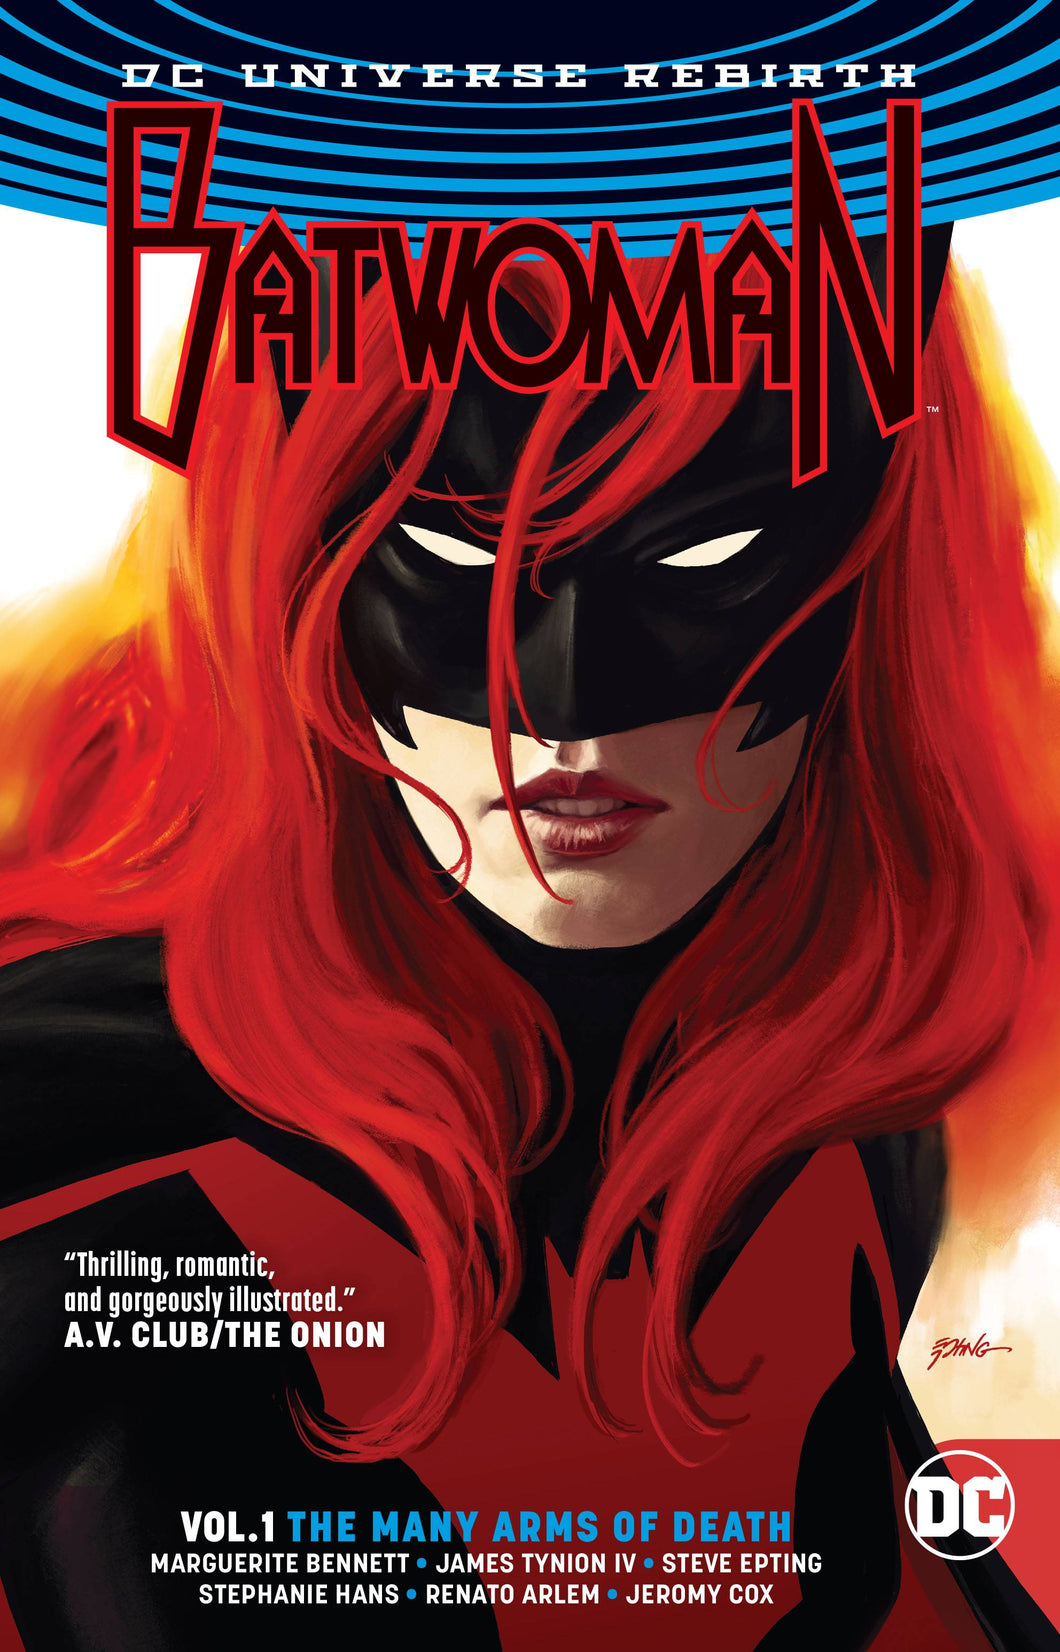 BATWOMAN TP VOL 01 THE MANY ARMS OF DEATH